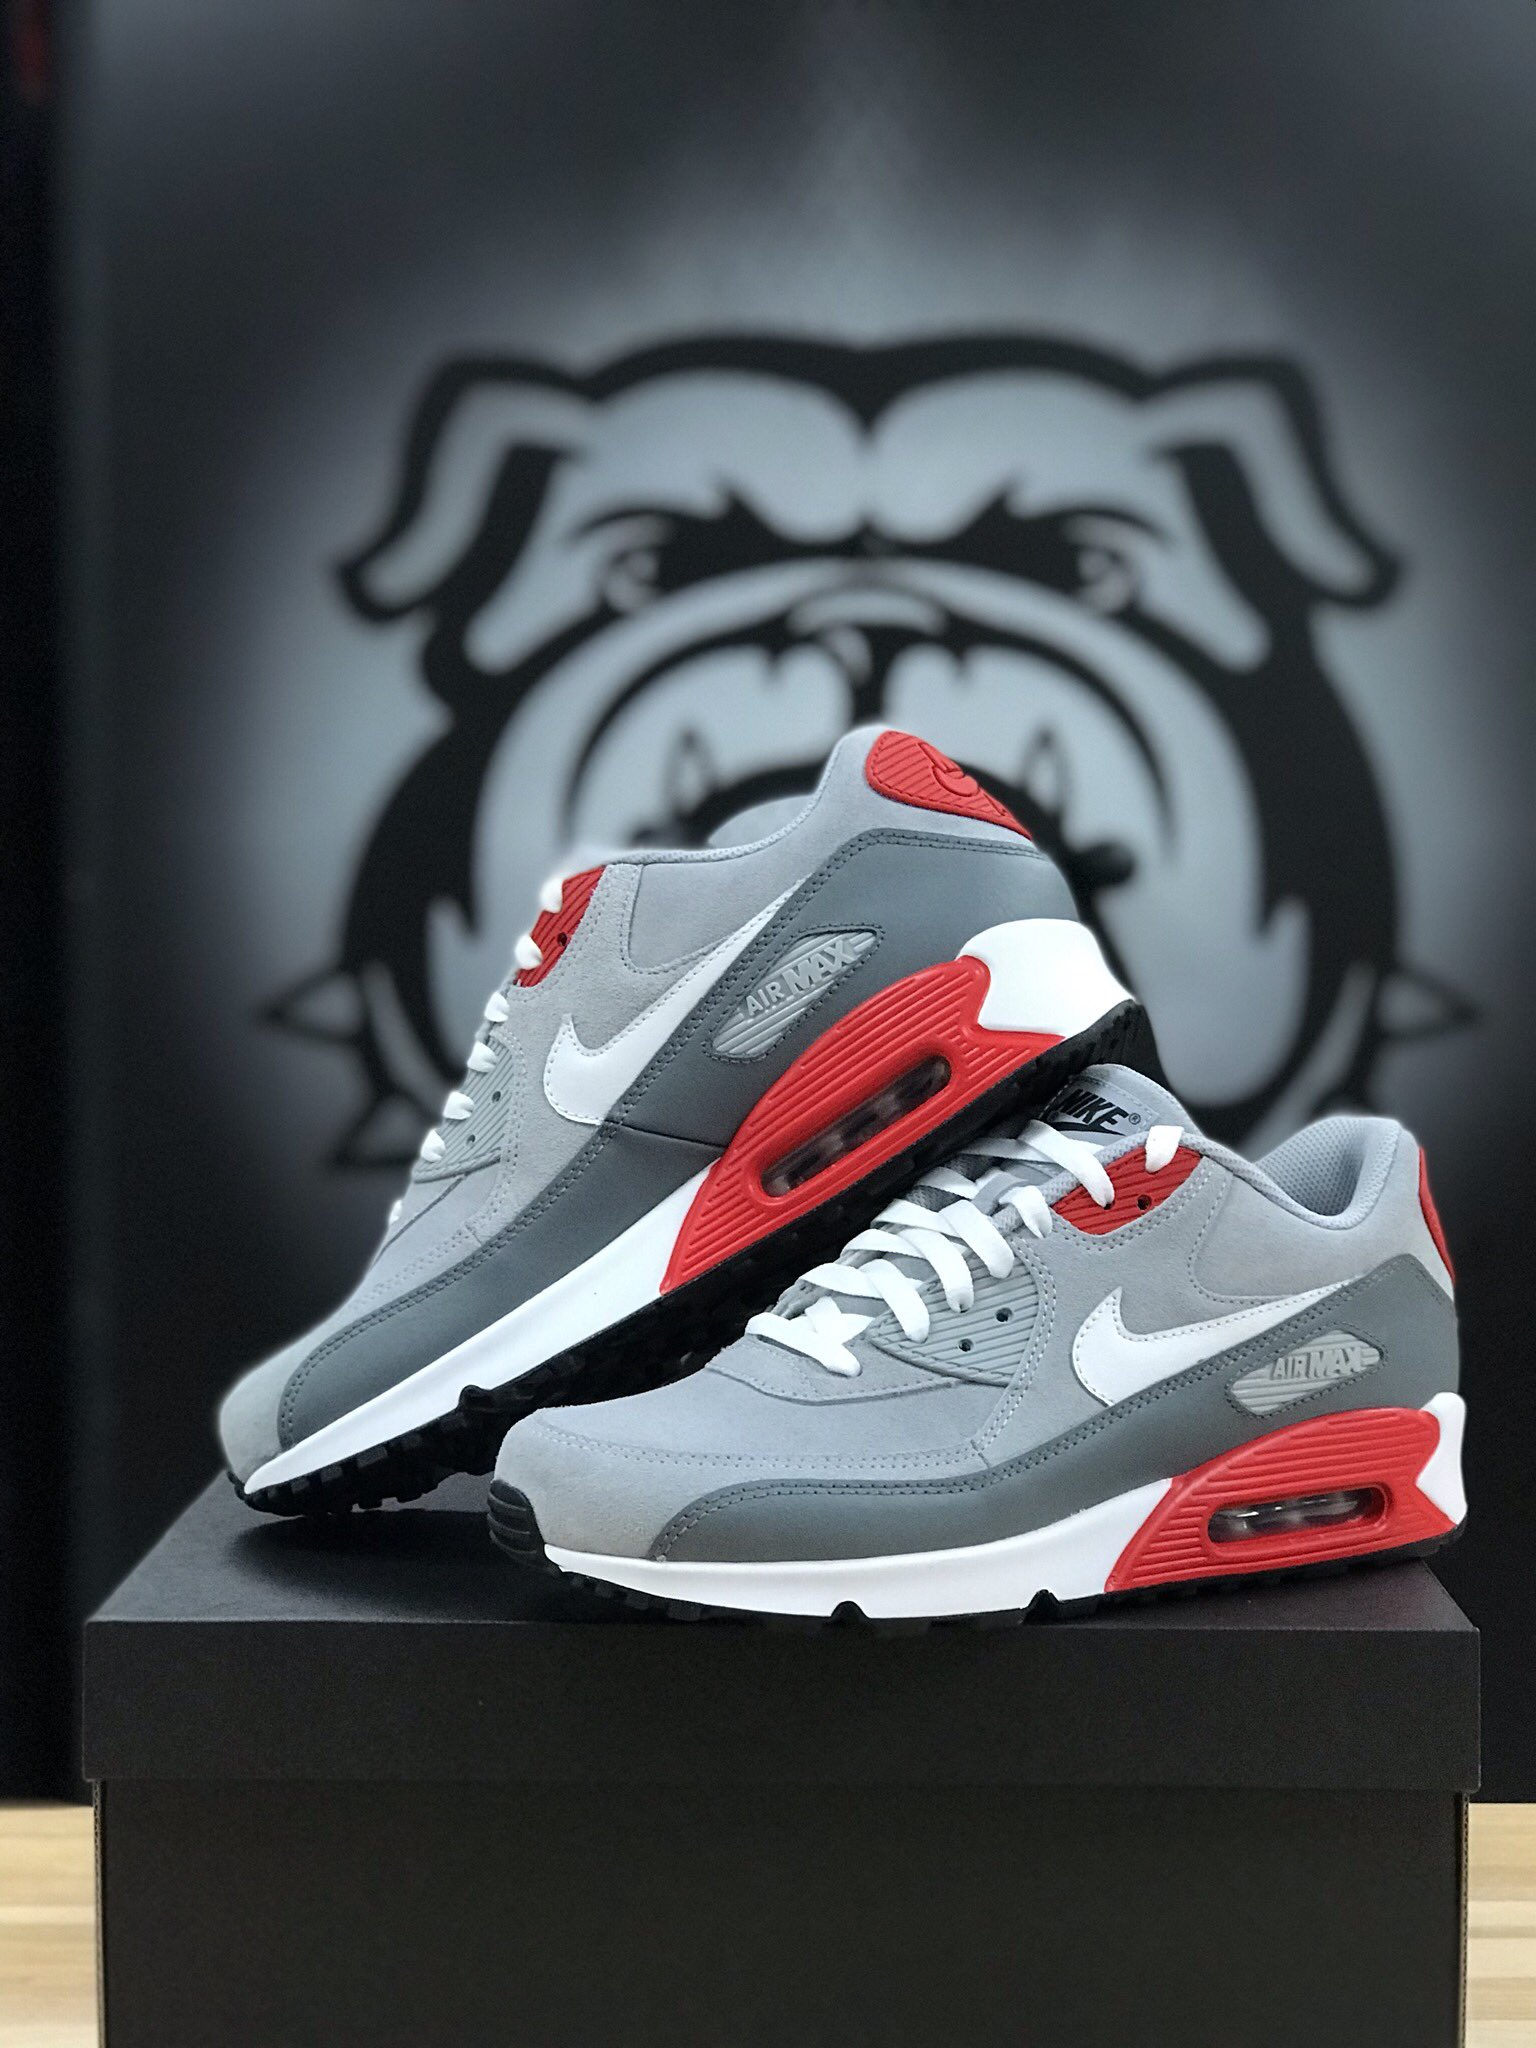 online store e3f7e 4303a UGA Football Equip on Twitter: